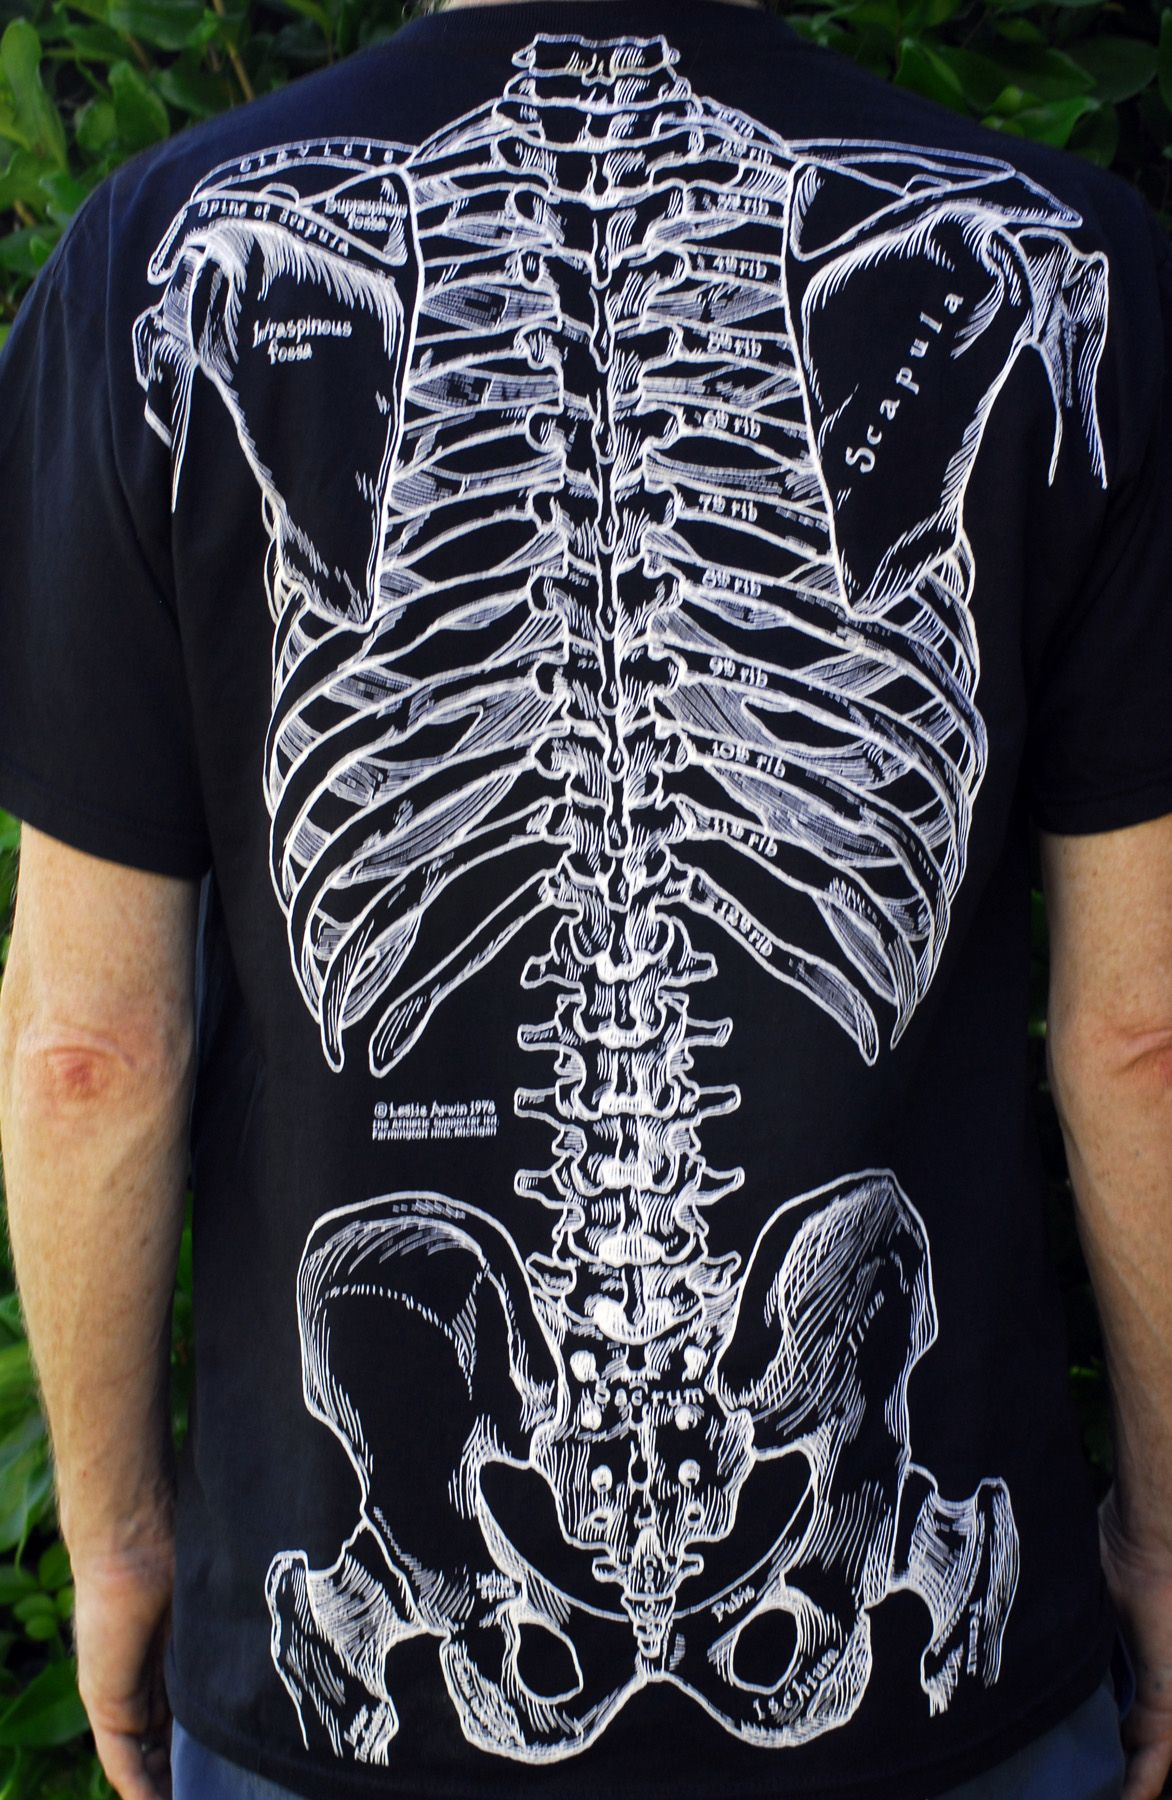 anatomy t-shirt muscles - Google Search | Camisetas com Anatomia in ...